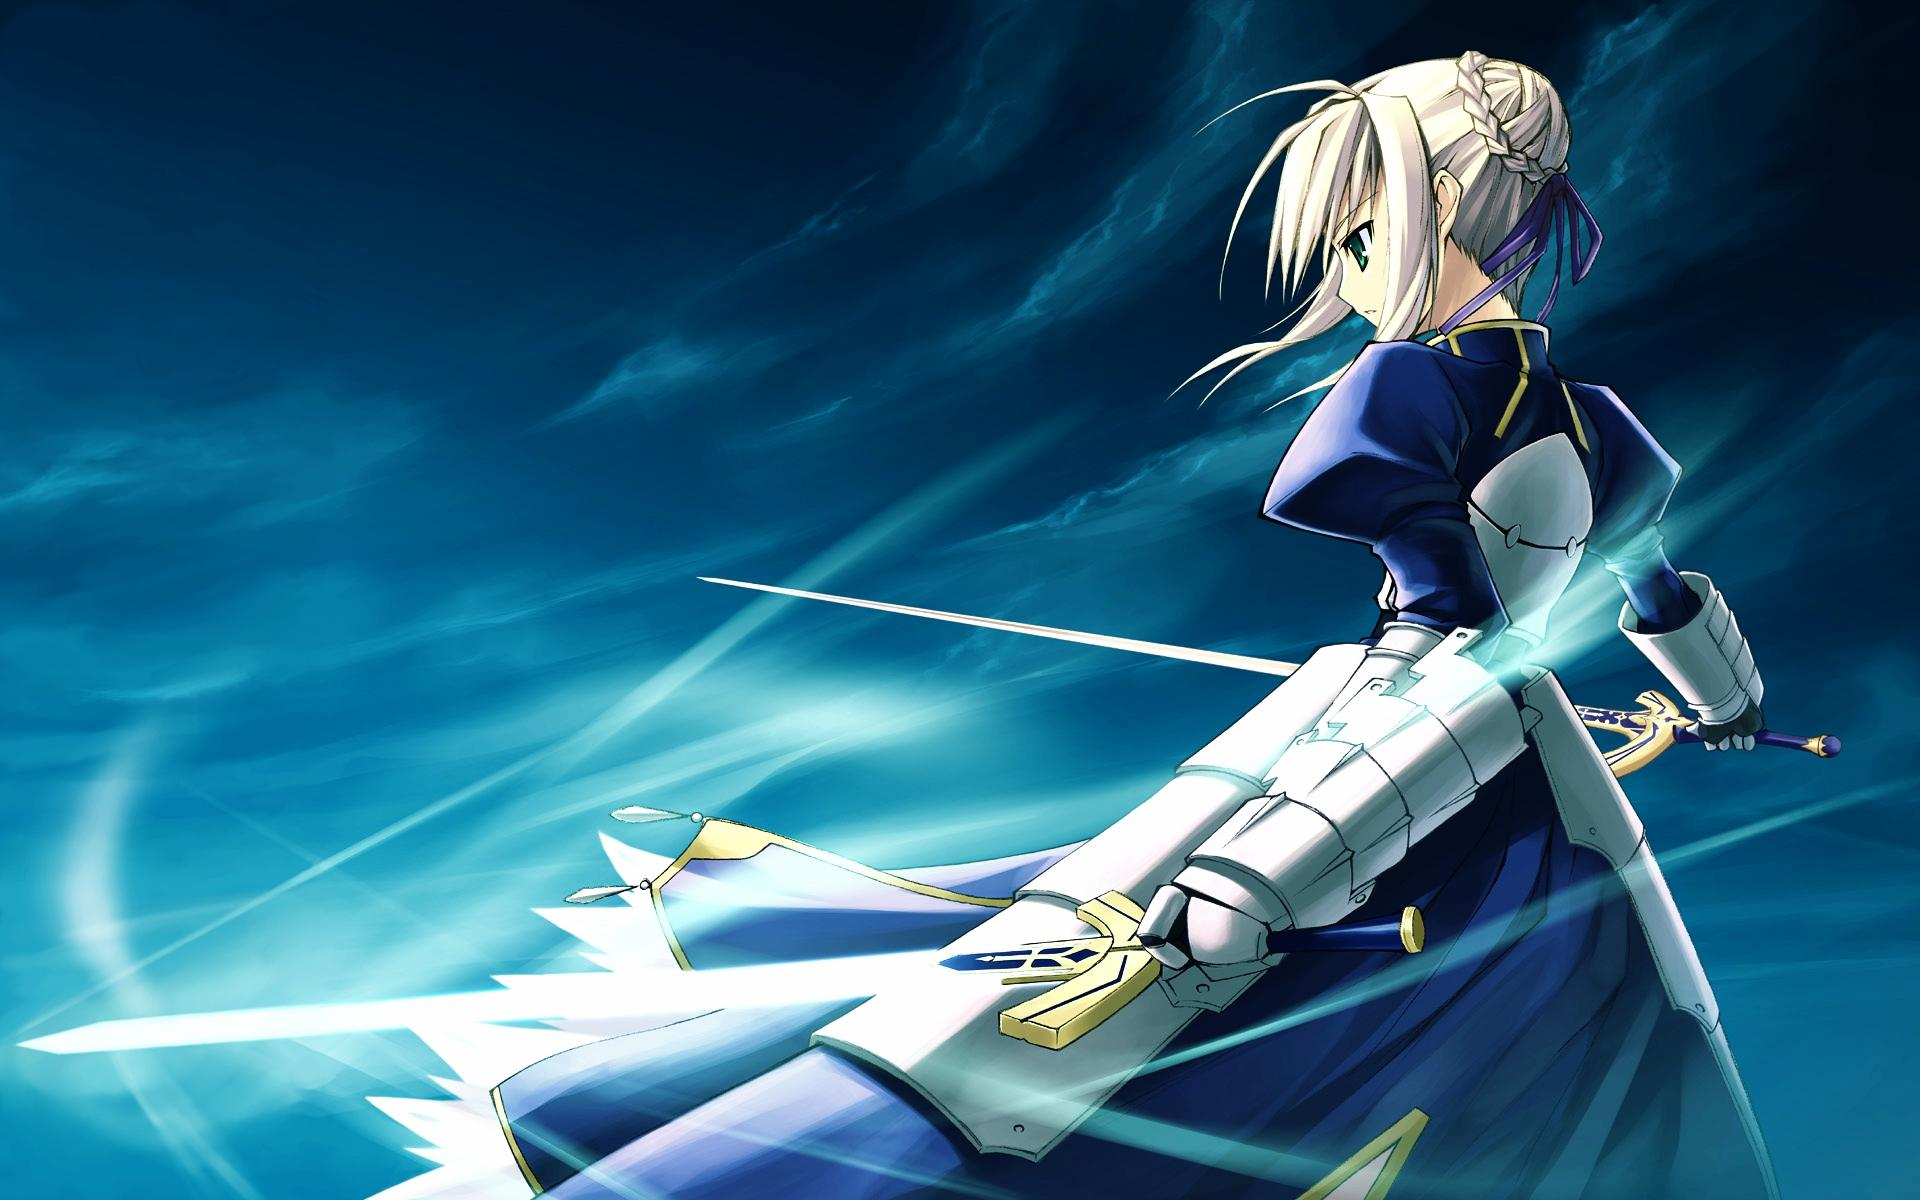 Fate/Stay Night HD Wallpaper